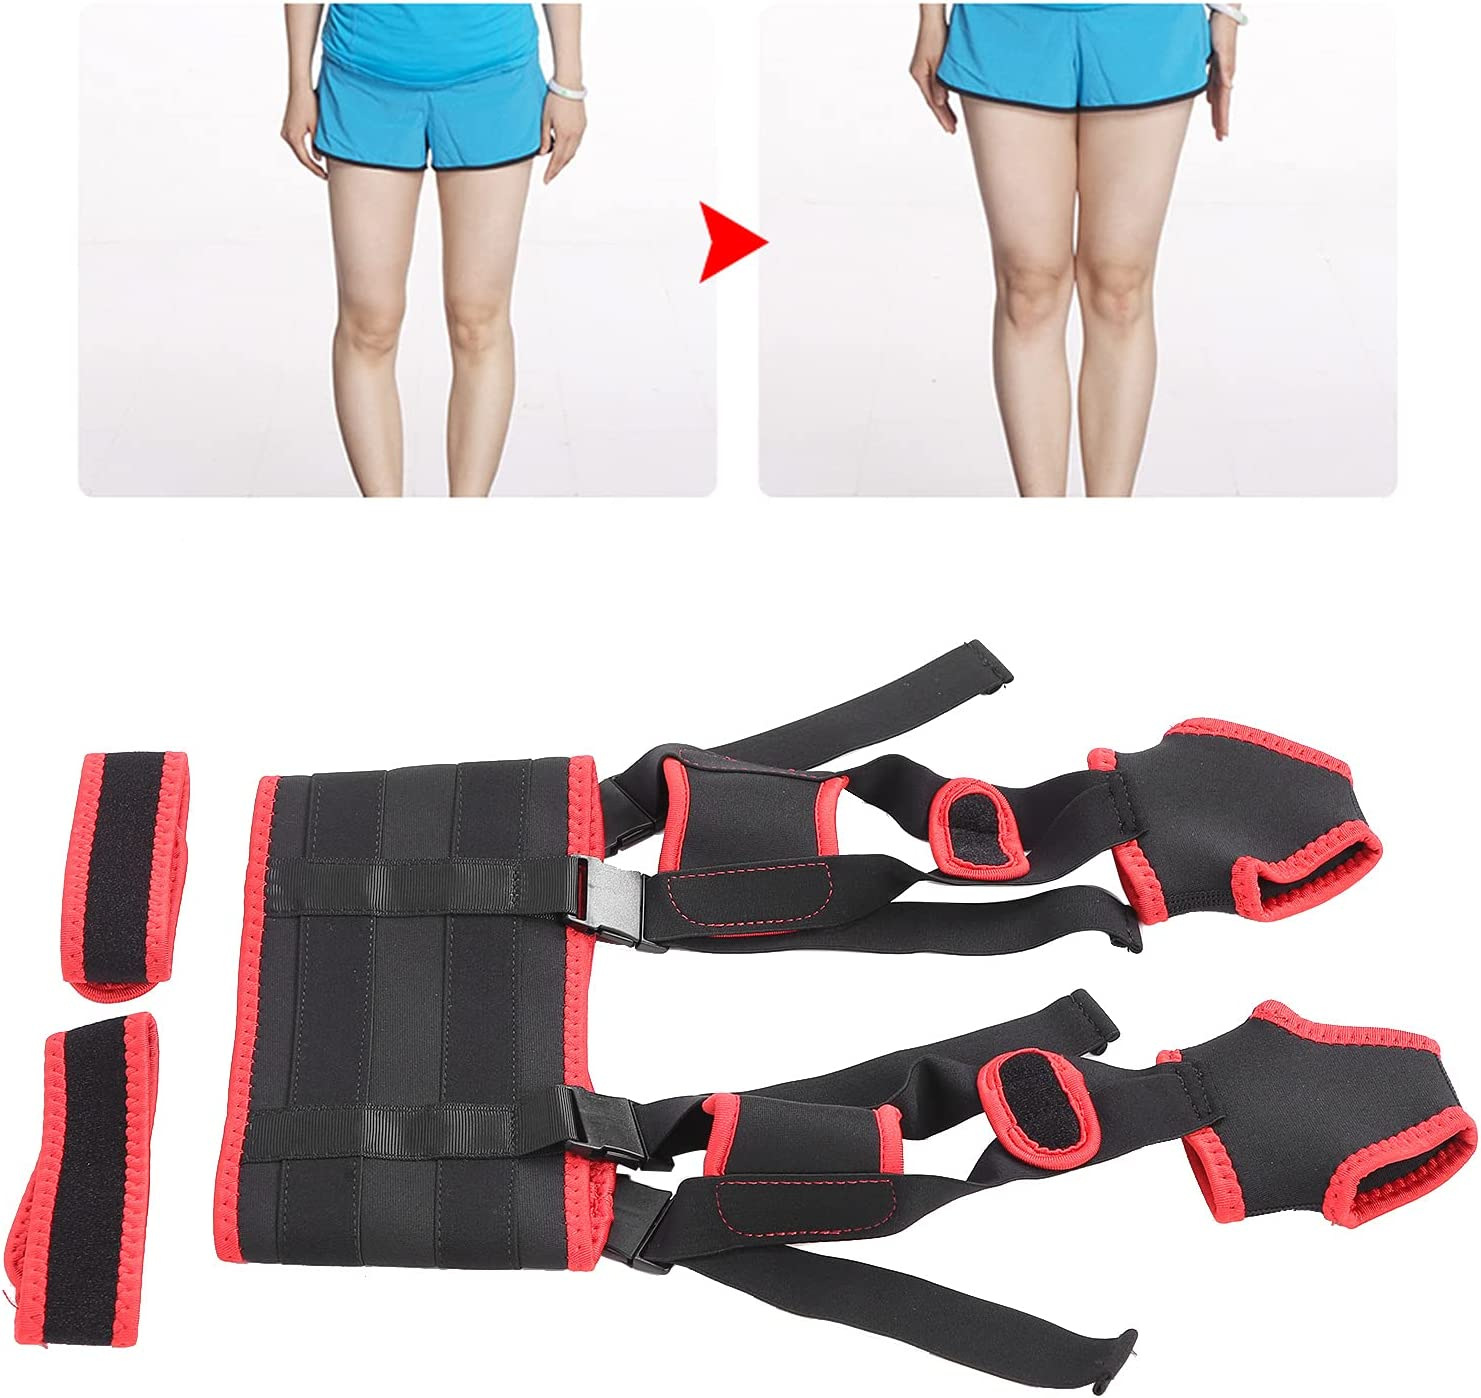 Legs Correction Max 43% OFF Belt Convinient O Corrector Durable Max 86% OFF Shaped